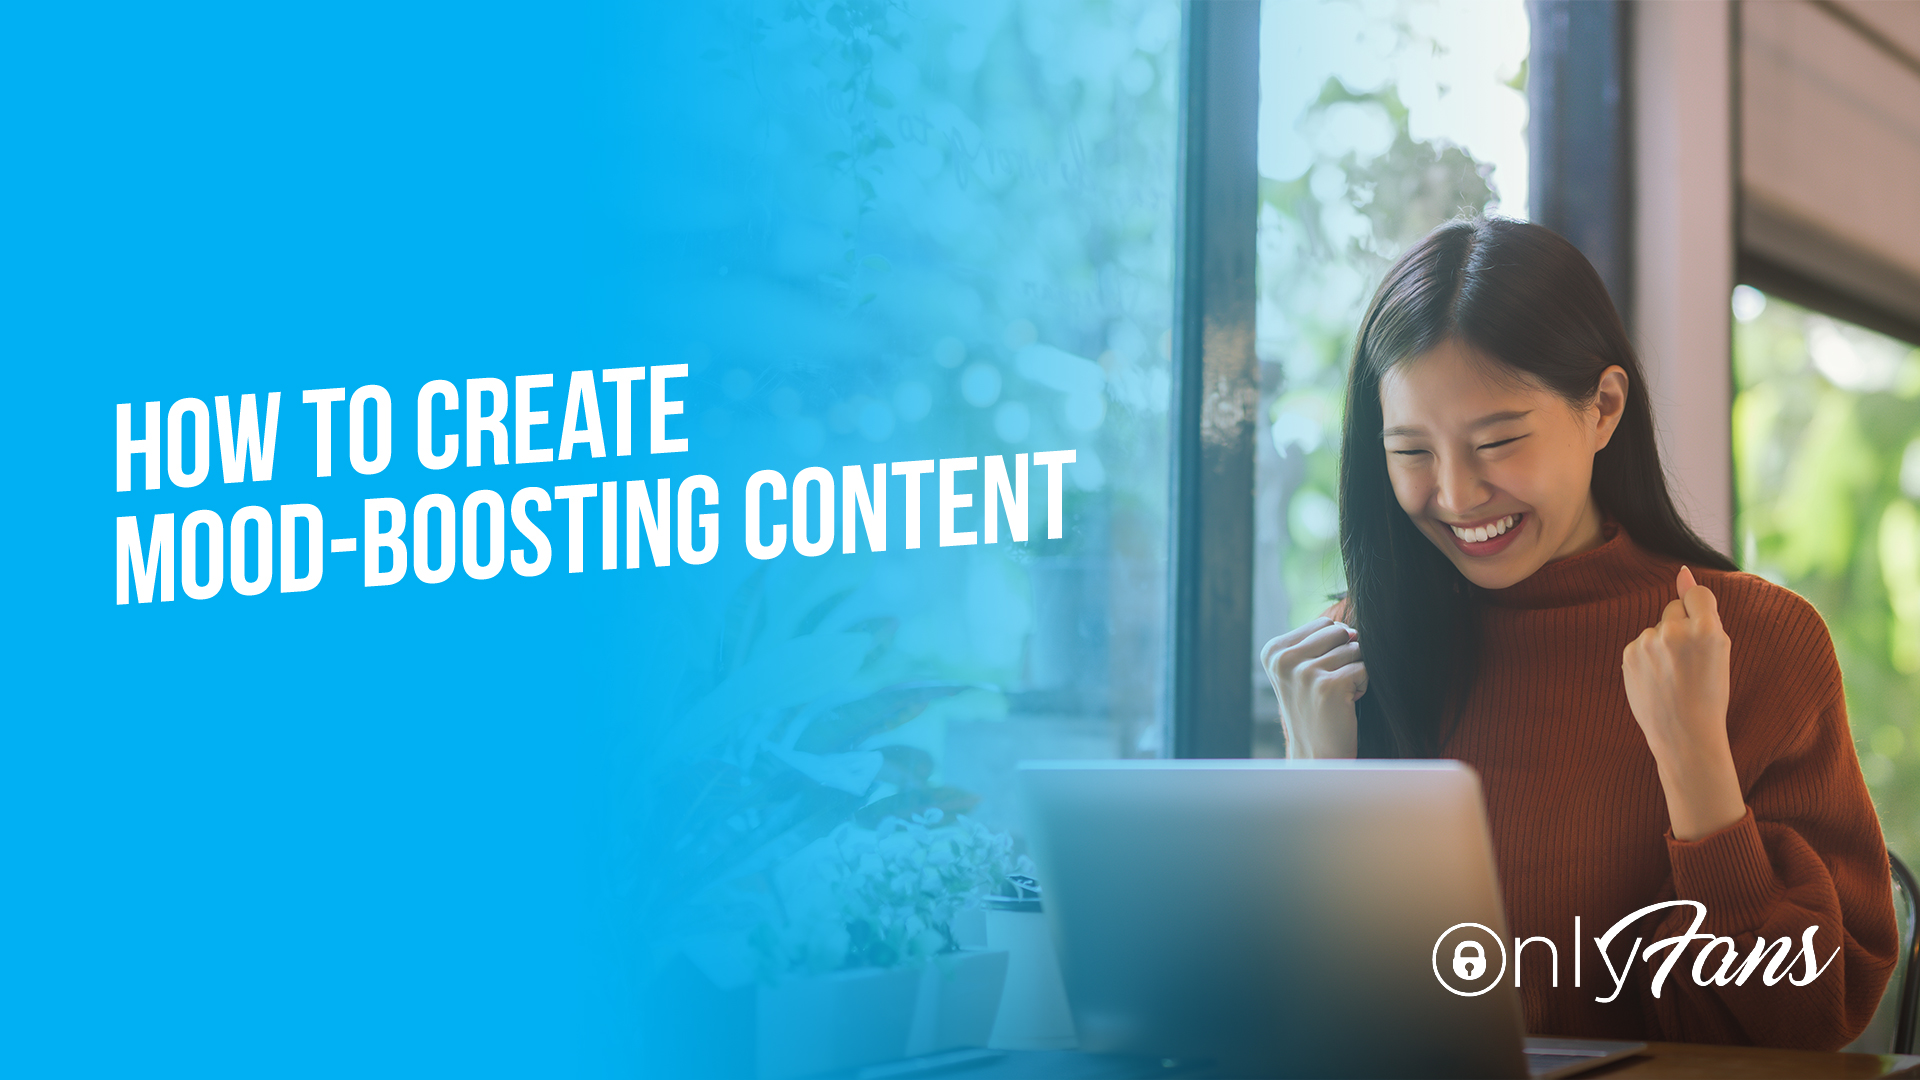 How to create mood-boosting content